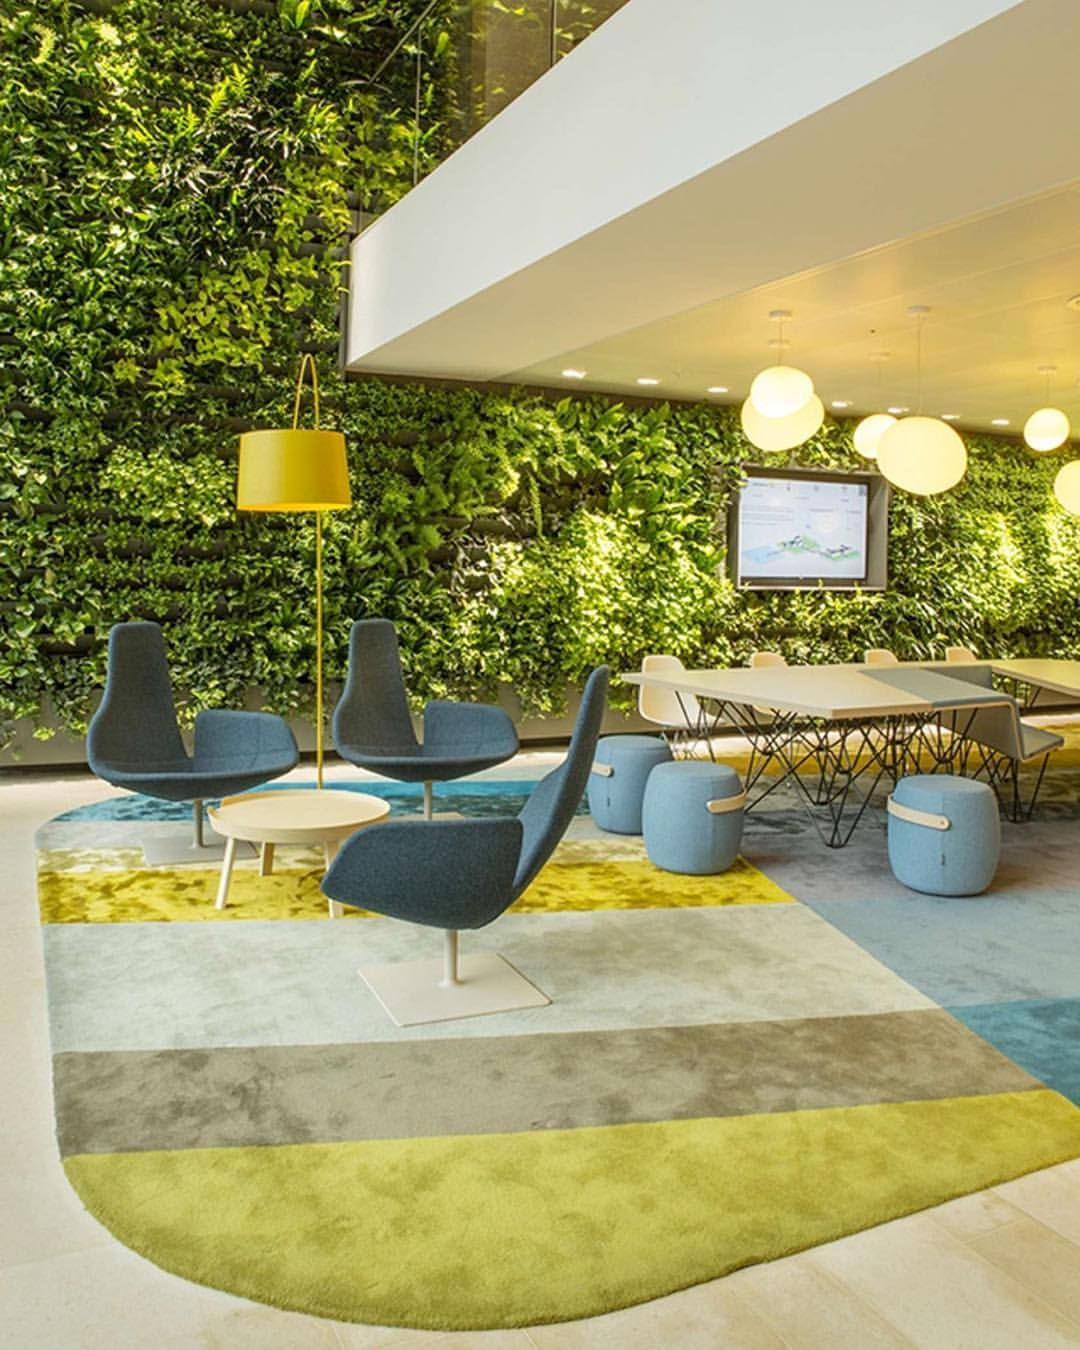 Commercial Walls Landscape Design: Dutch Power Company Nuon's Vibrant Office By Heyligers Design+Projects Consists Of Open